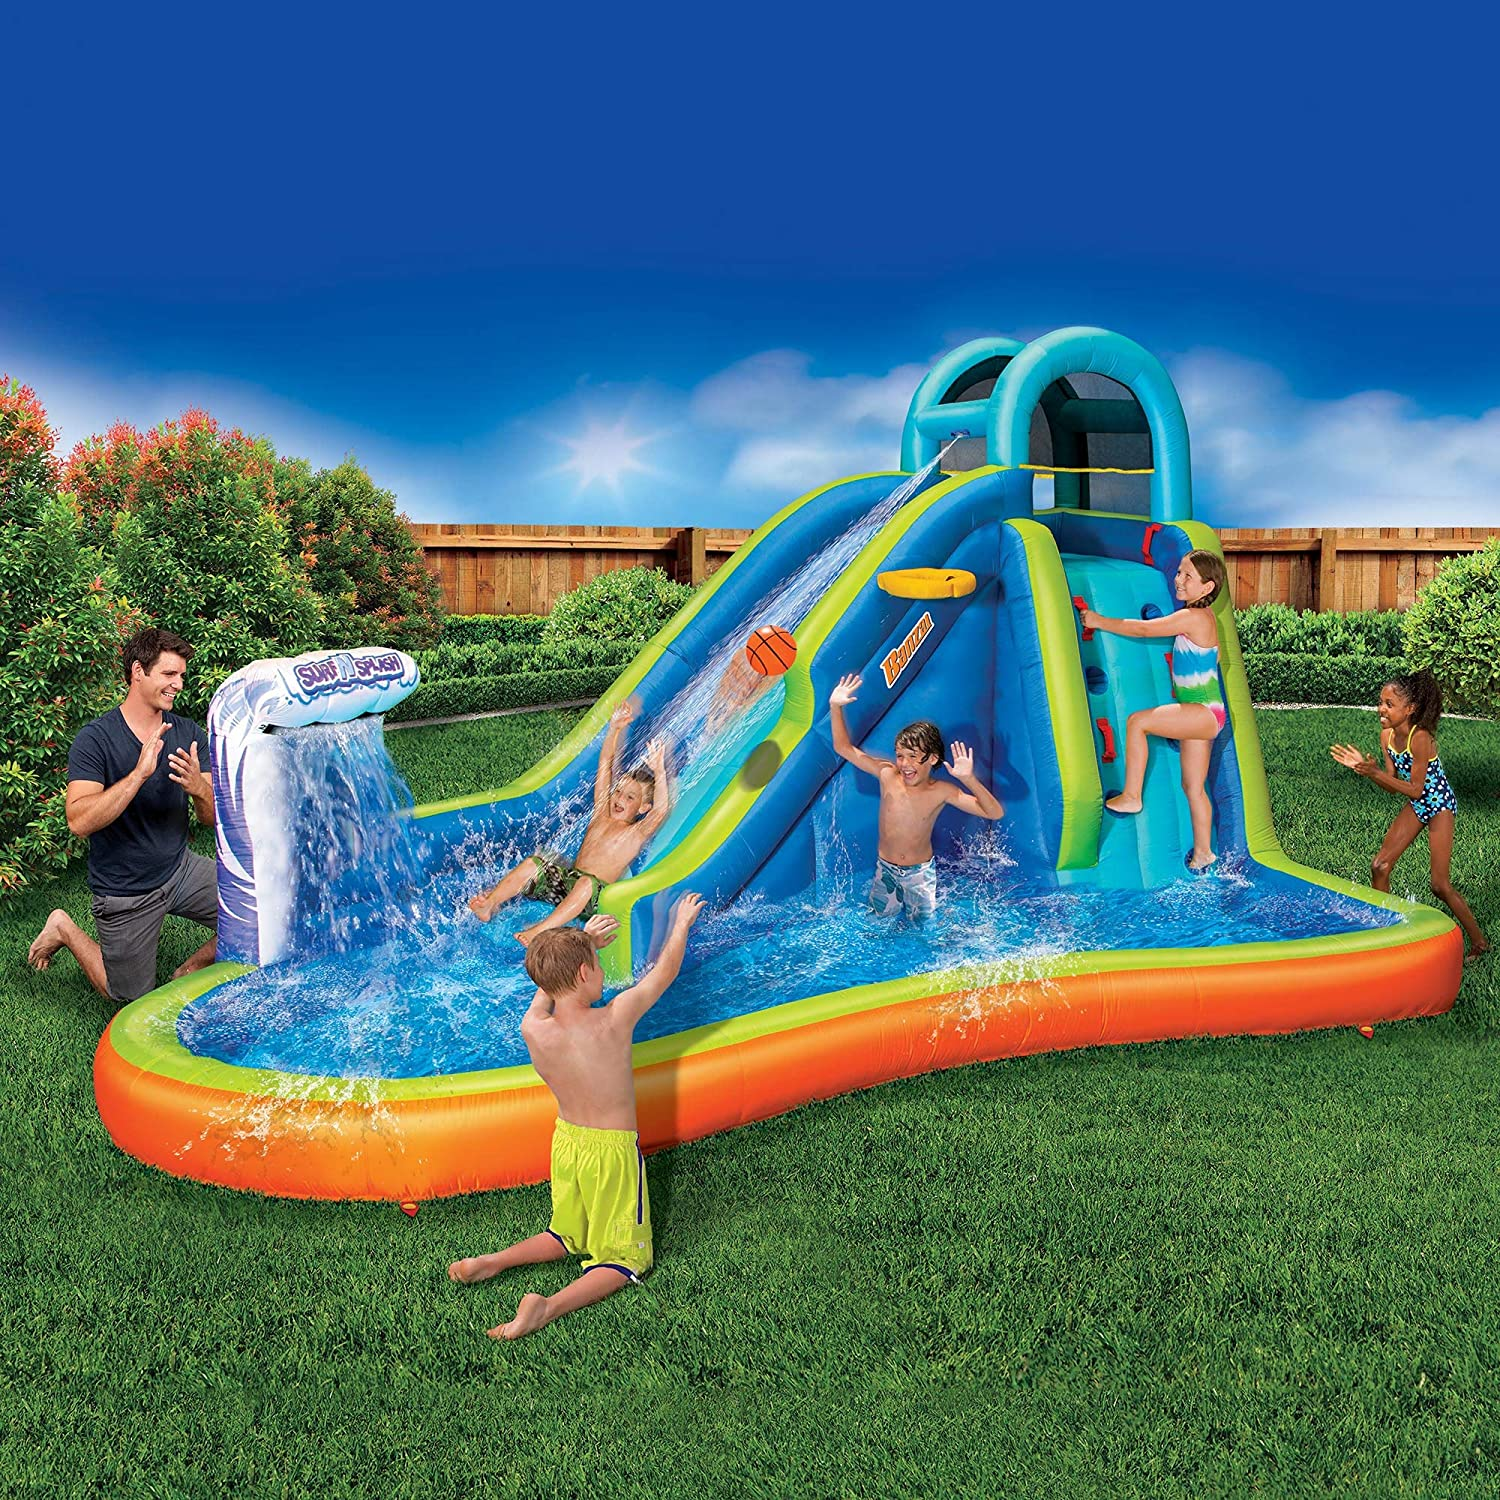 Top 7 Best Water Slide Pools Inflatable Reviews in 2021 14